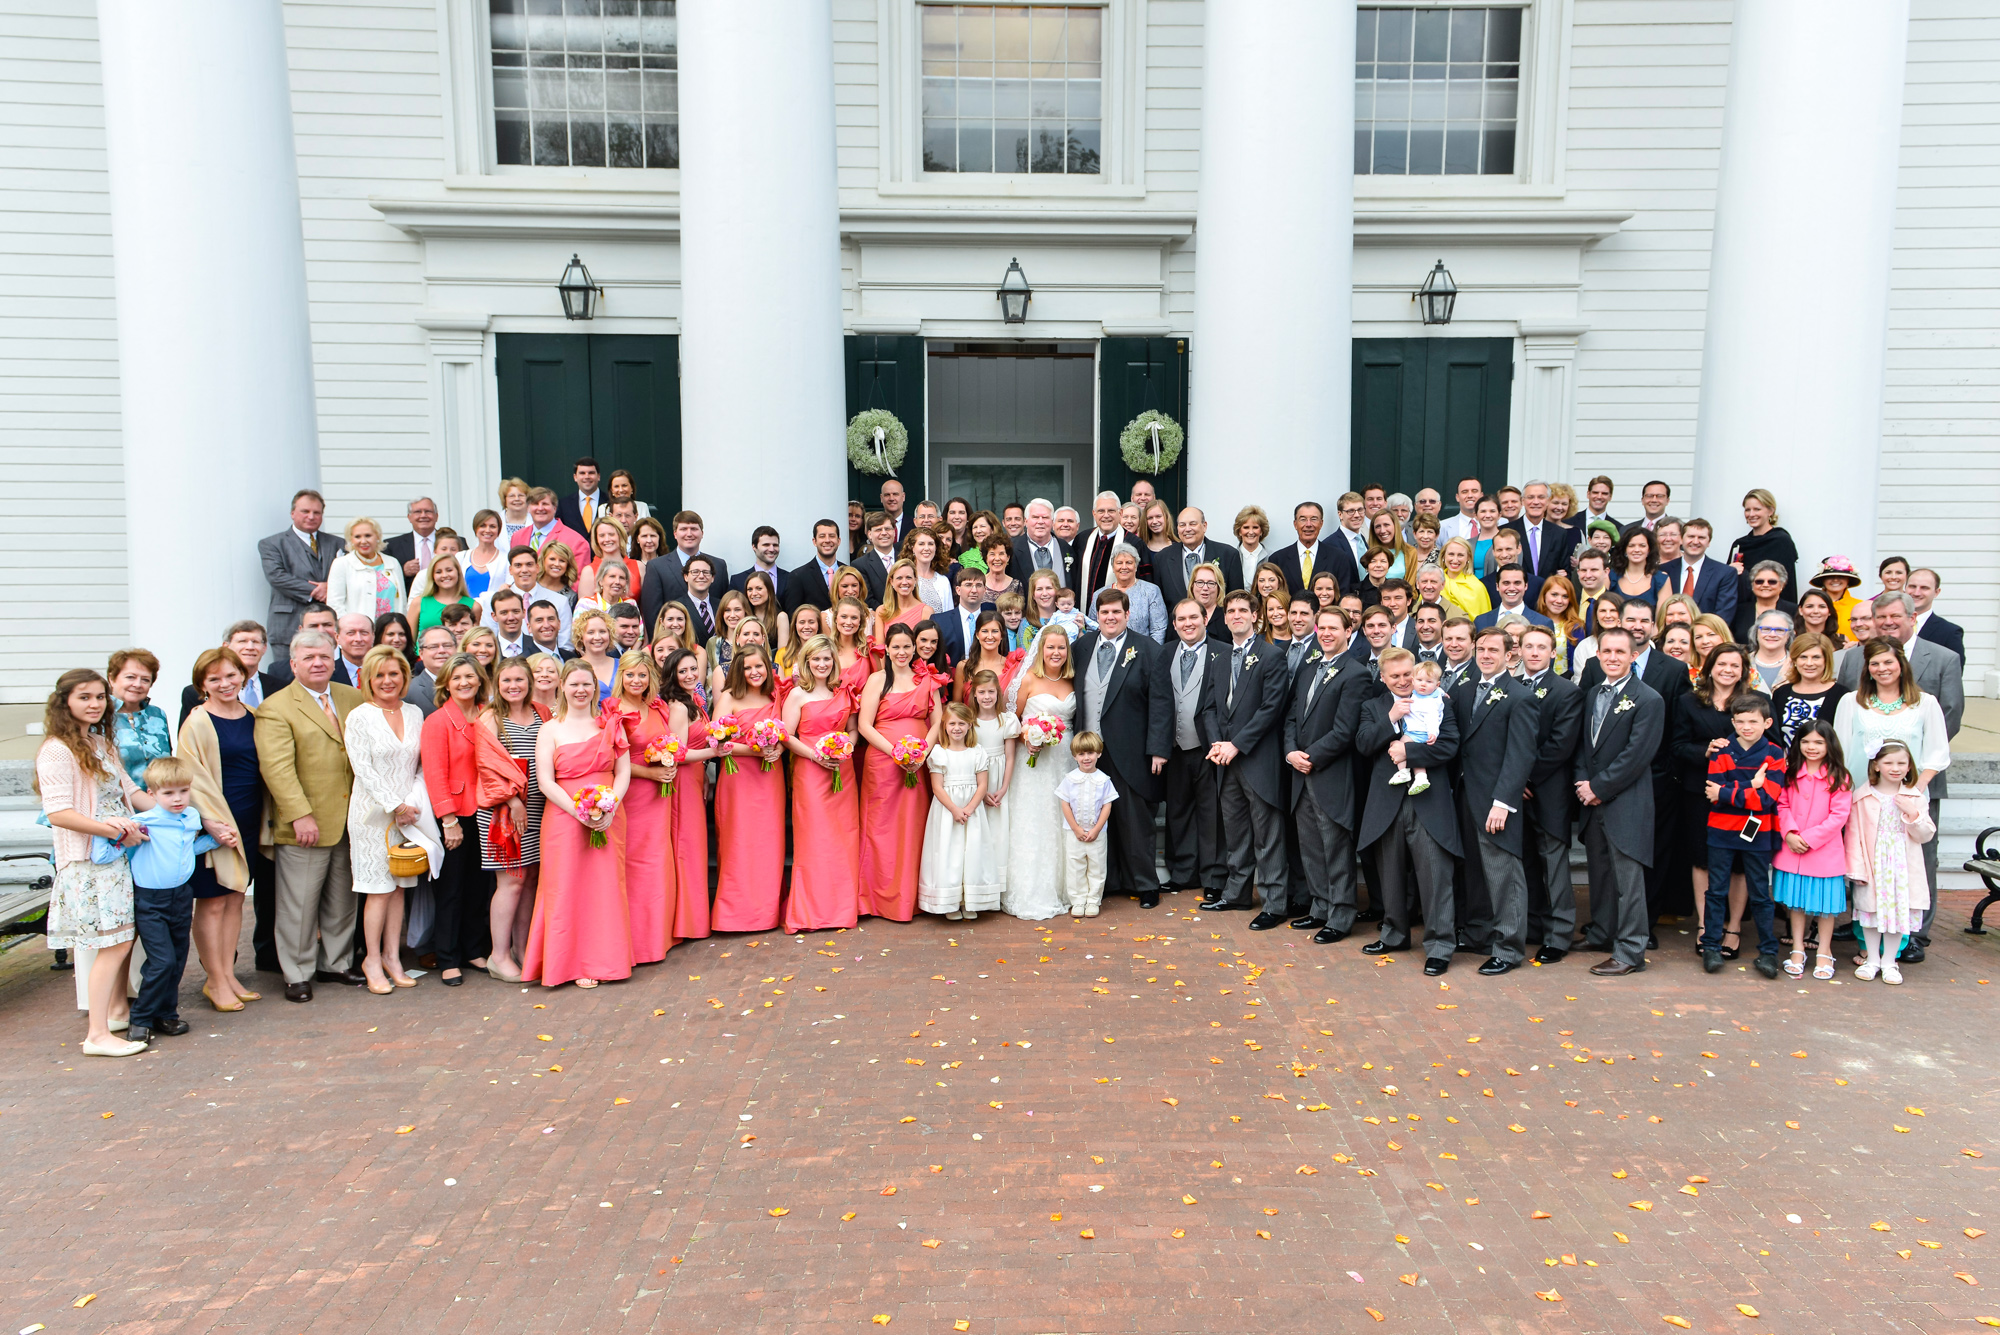 A group wedding photo outside the Old Whaling Church in Edgartown  photo by David Welch Photography